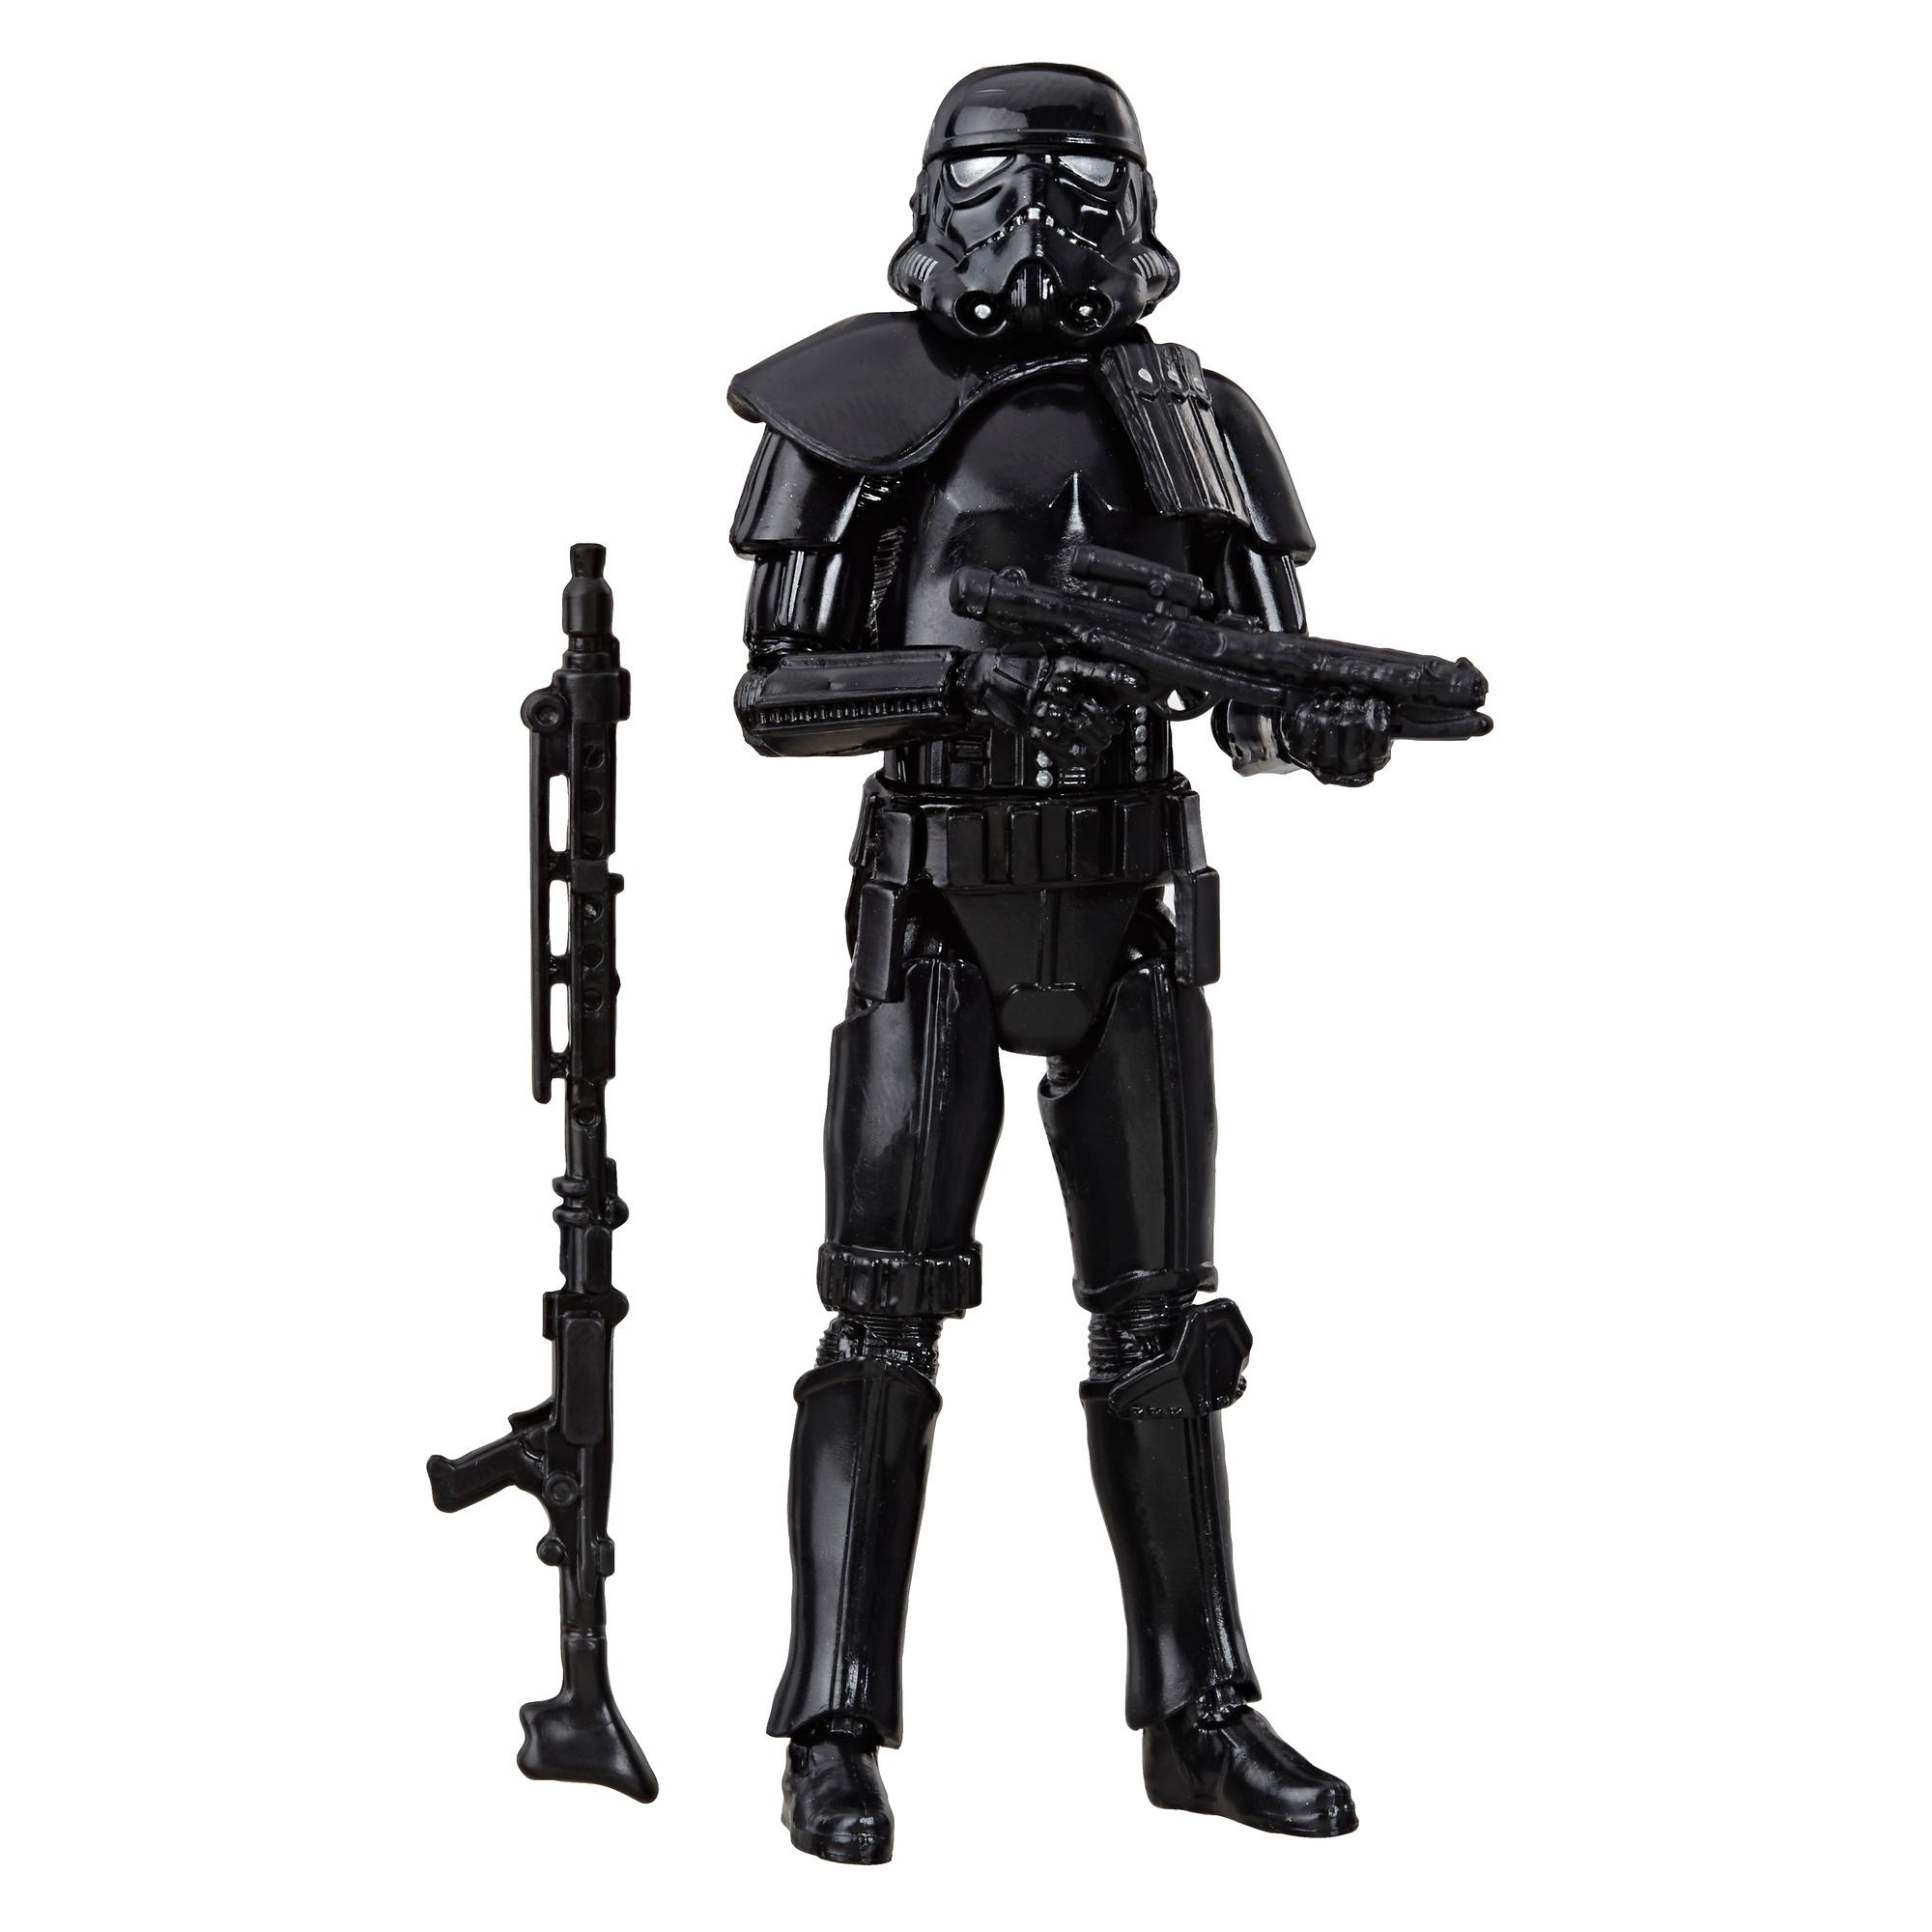 Star Wars The Vintage Collection Shadow Trooper Toy, 3.75-inch Scale Action Figure, Toys for Kids Ages 4 and Up